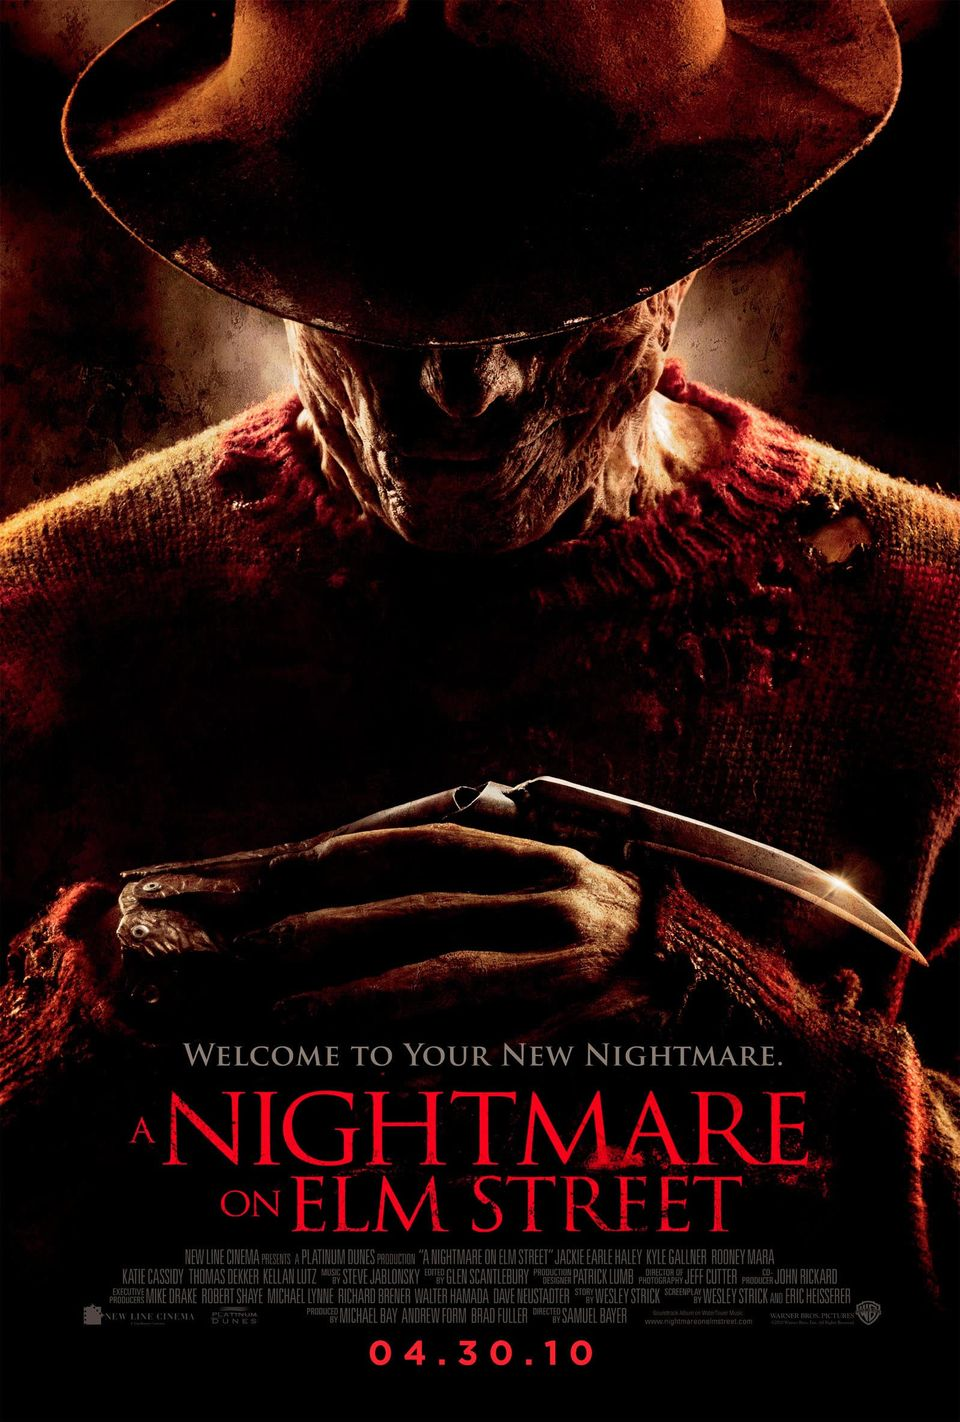 <strong>Worldwide box office:</strong> $457 million <br><br> The 1984 original, directed by horror master Wes Craven, premier